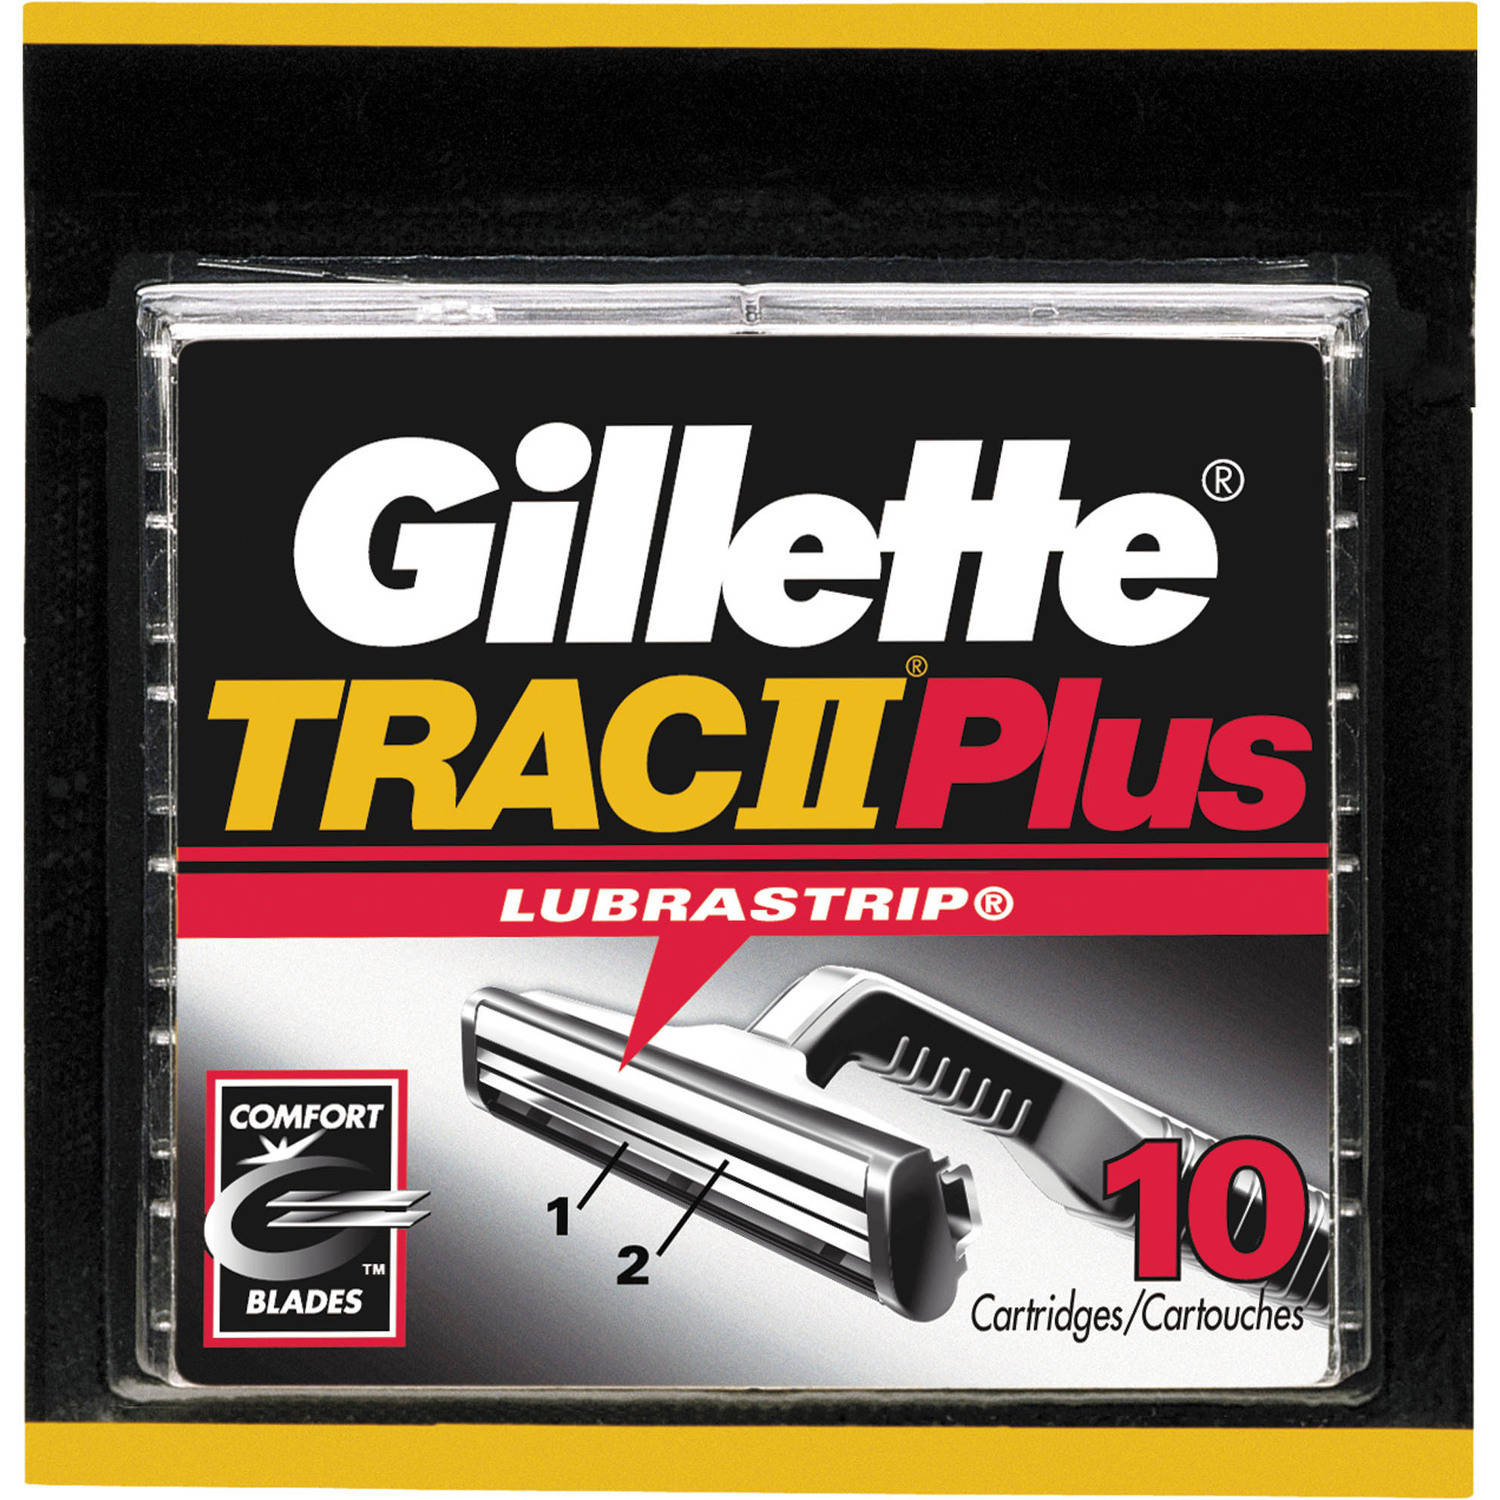 Gillette TRAC II Plus Razor Blade Refill Cartridges, 10 Count